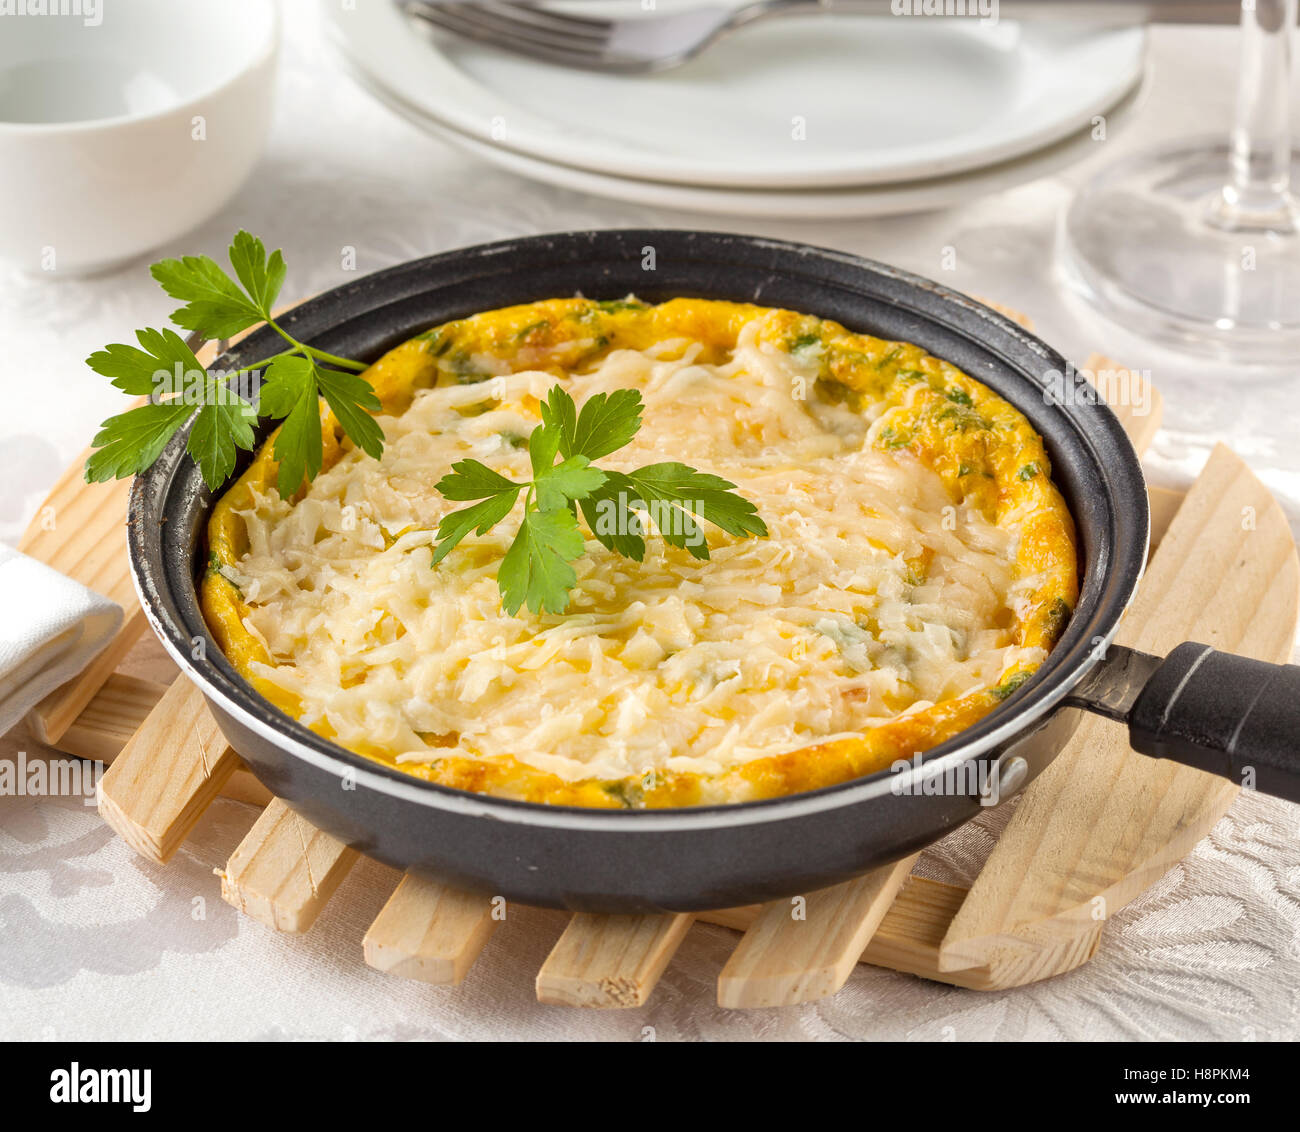 Italian frittata with ricotta, cheddar, gruyere and parmesan cheese in a frying pan on a table. - Stock Image